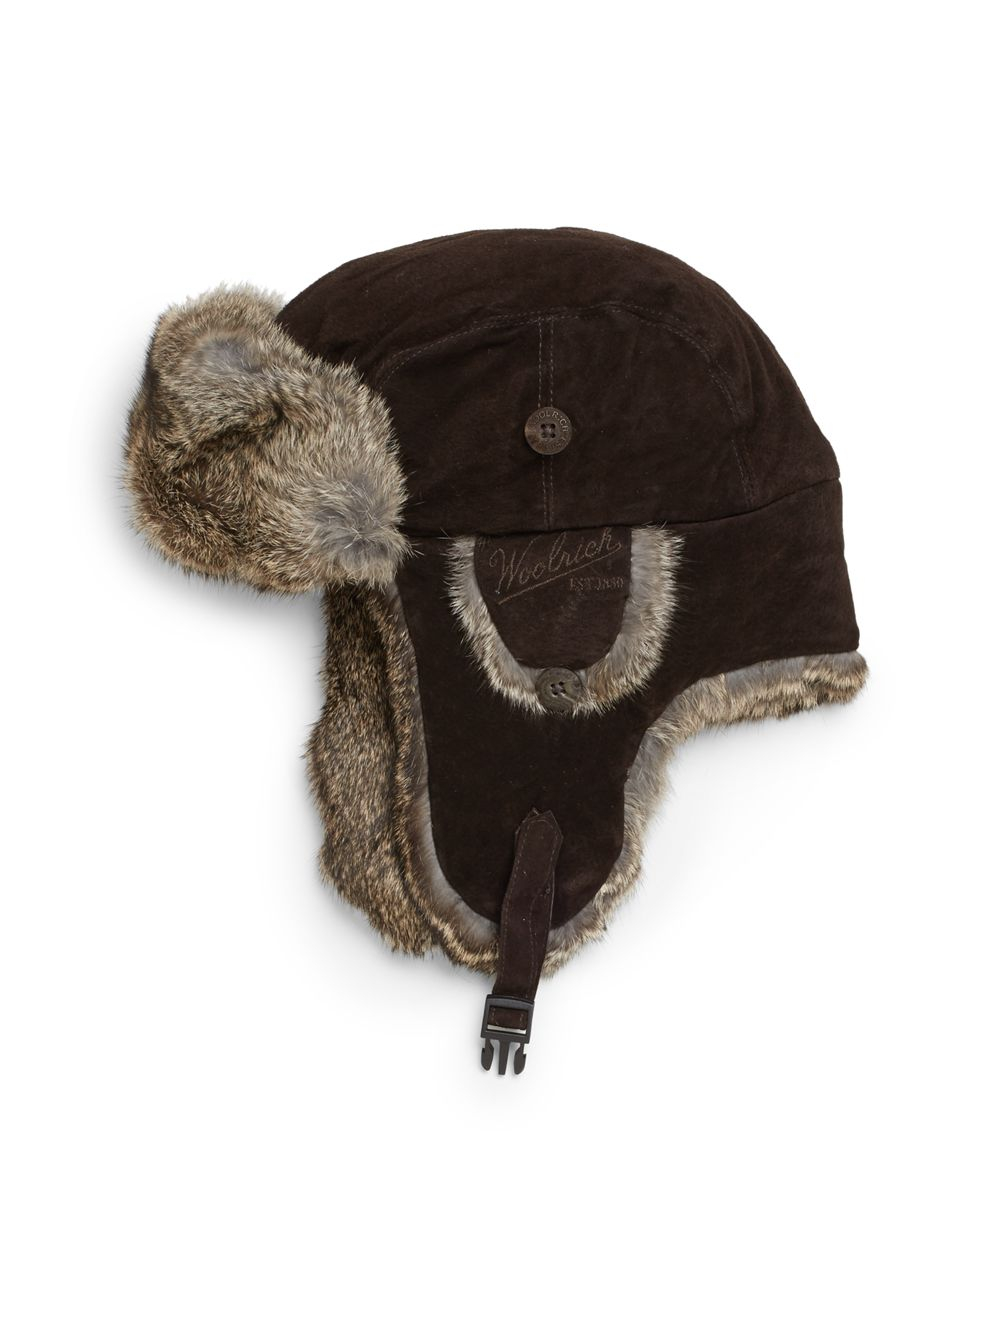 7da71866ad3 Lyst - Woolrich Suede Rabbit Fur Trapper Hat in Brown for Men